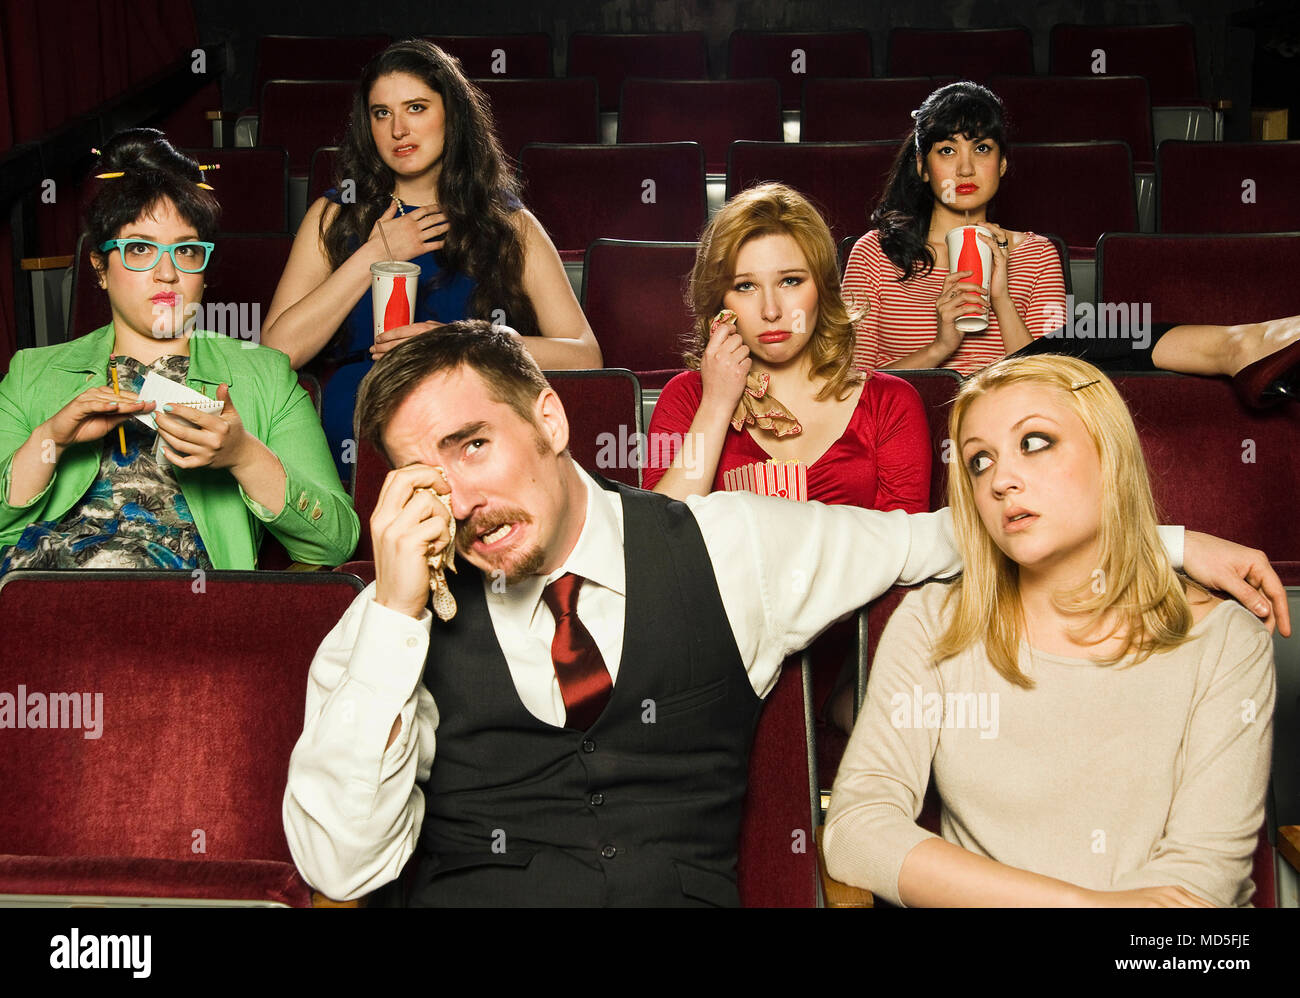 A group of people reacting to a movie in a movie theater. - Stock Image